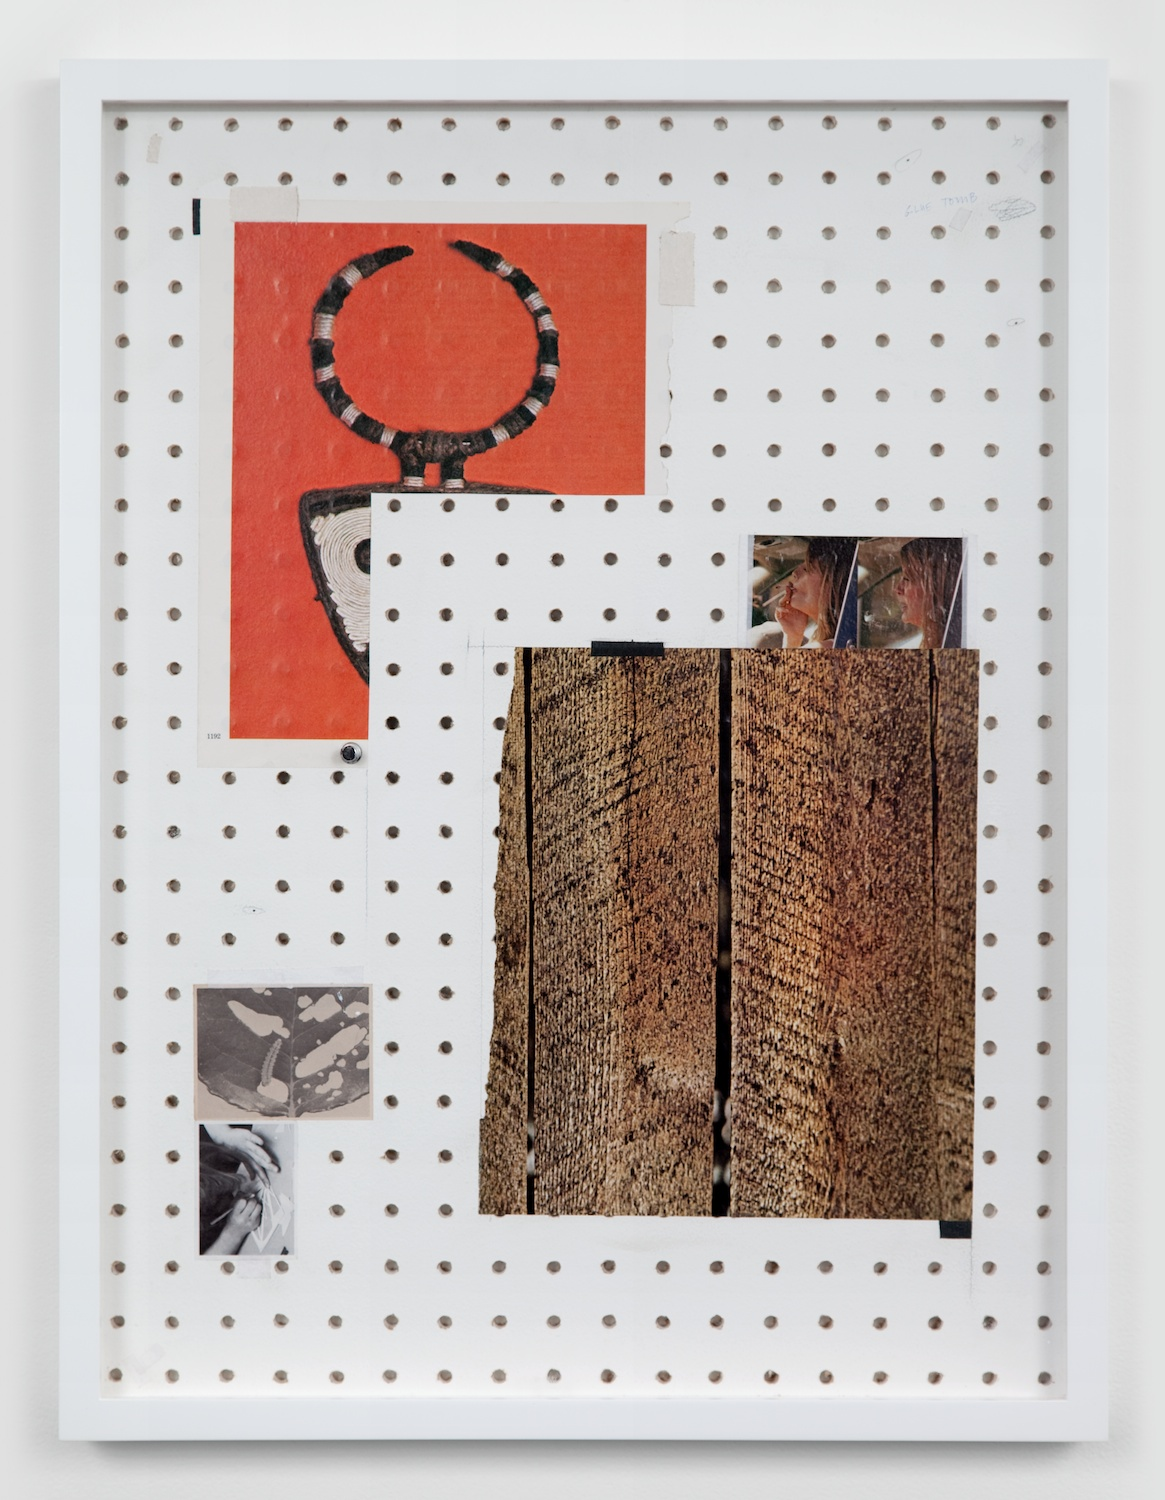 Amanda Ross-Ho  Untitled Still Life (TREES)  2011 Hand-drilled sheetrock, latex paint, graphite, ball point pen, found images, linen tape, book tape 24h x 18w in ARH003